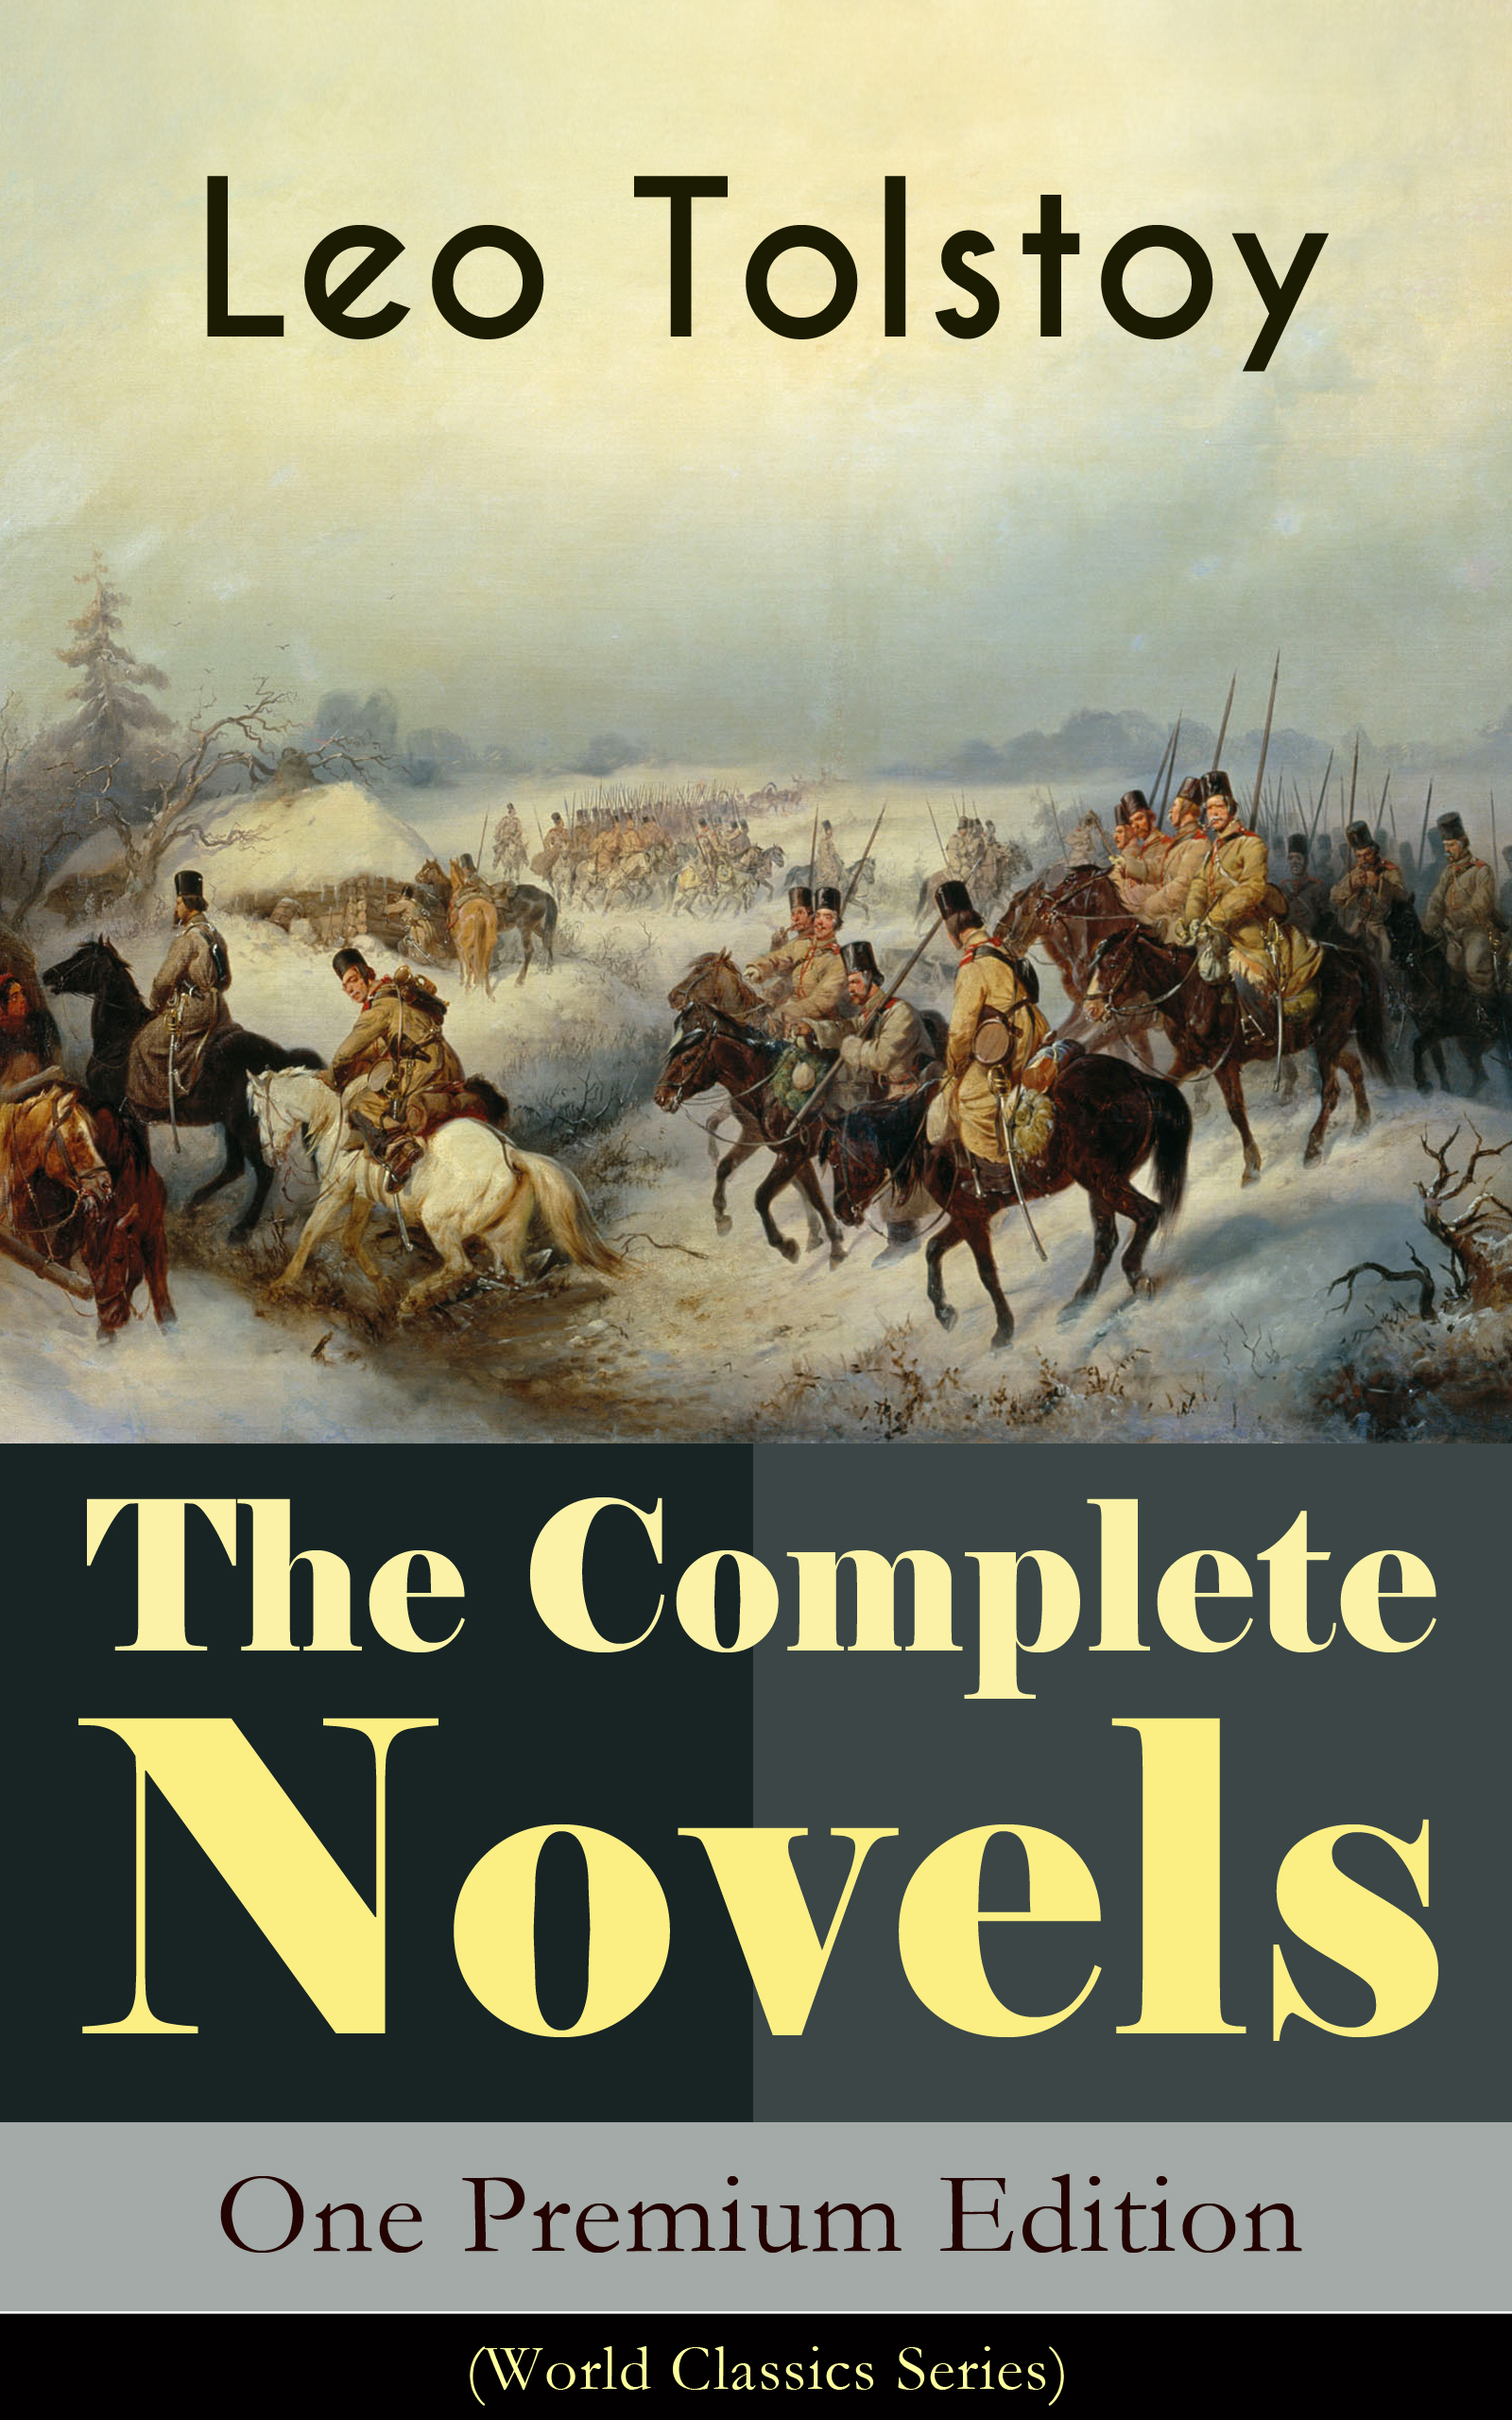 Leo Tolstoy The Complete Novels of Leo Tolstoy in One Premium Edition (World Classics Series) цена